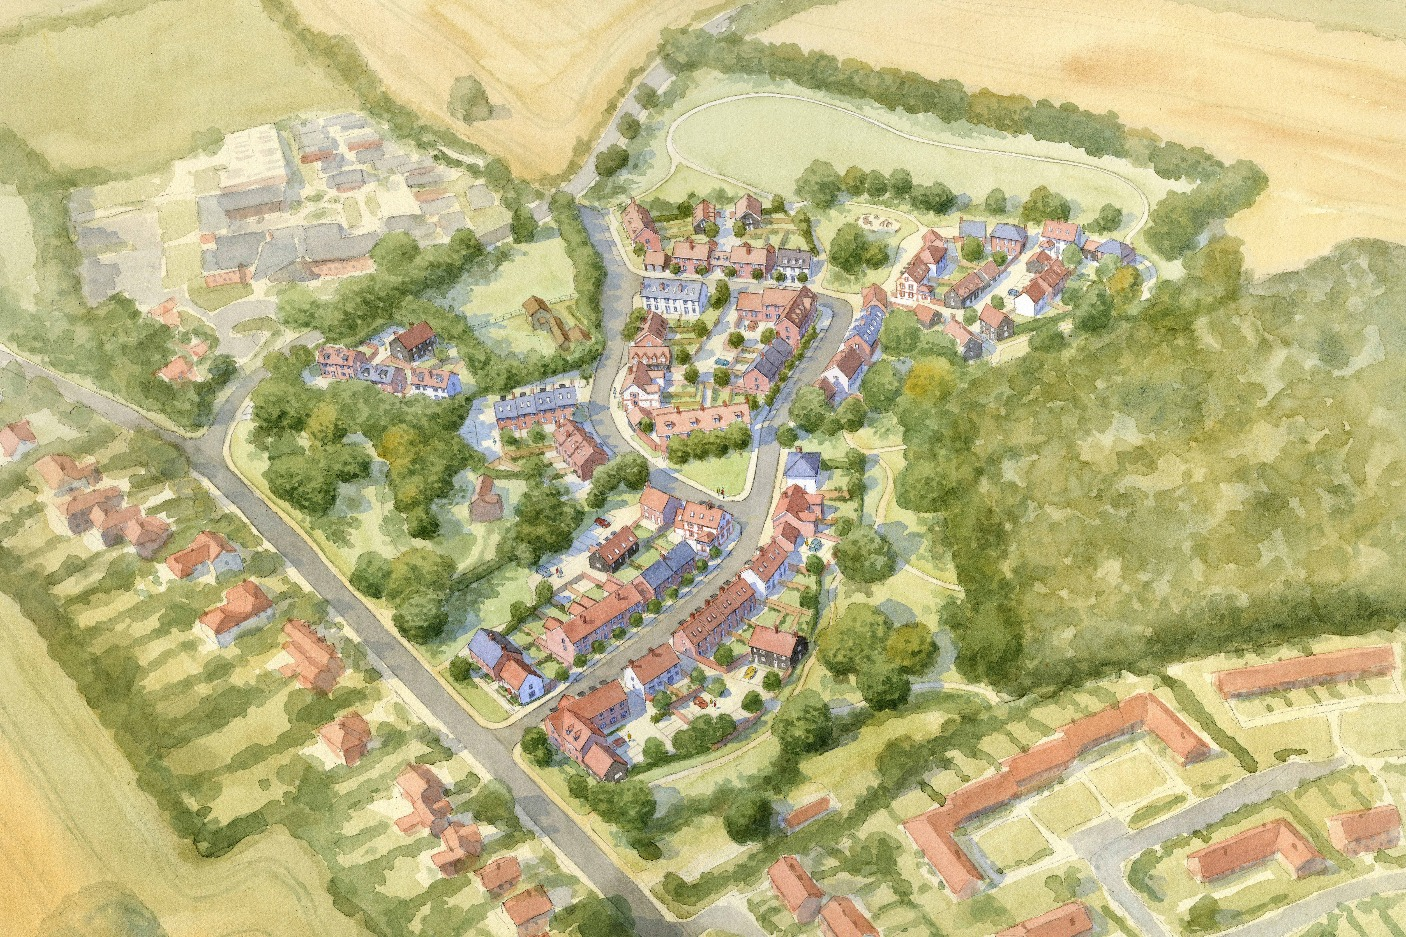 Buckinghamshire village masterplan - aerial view